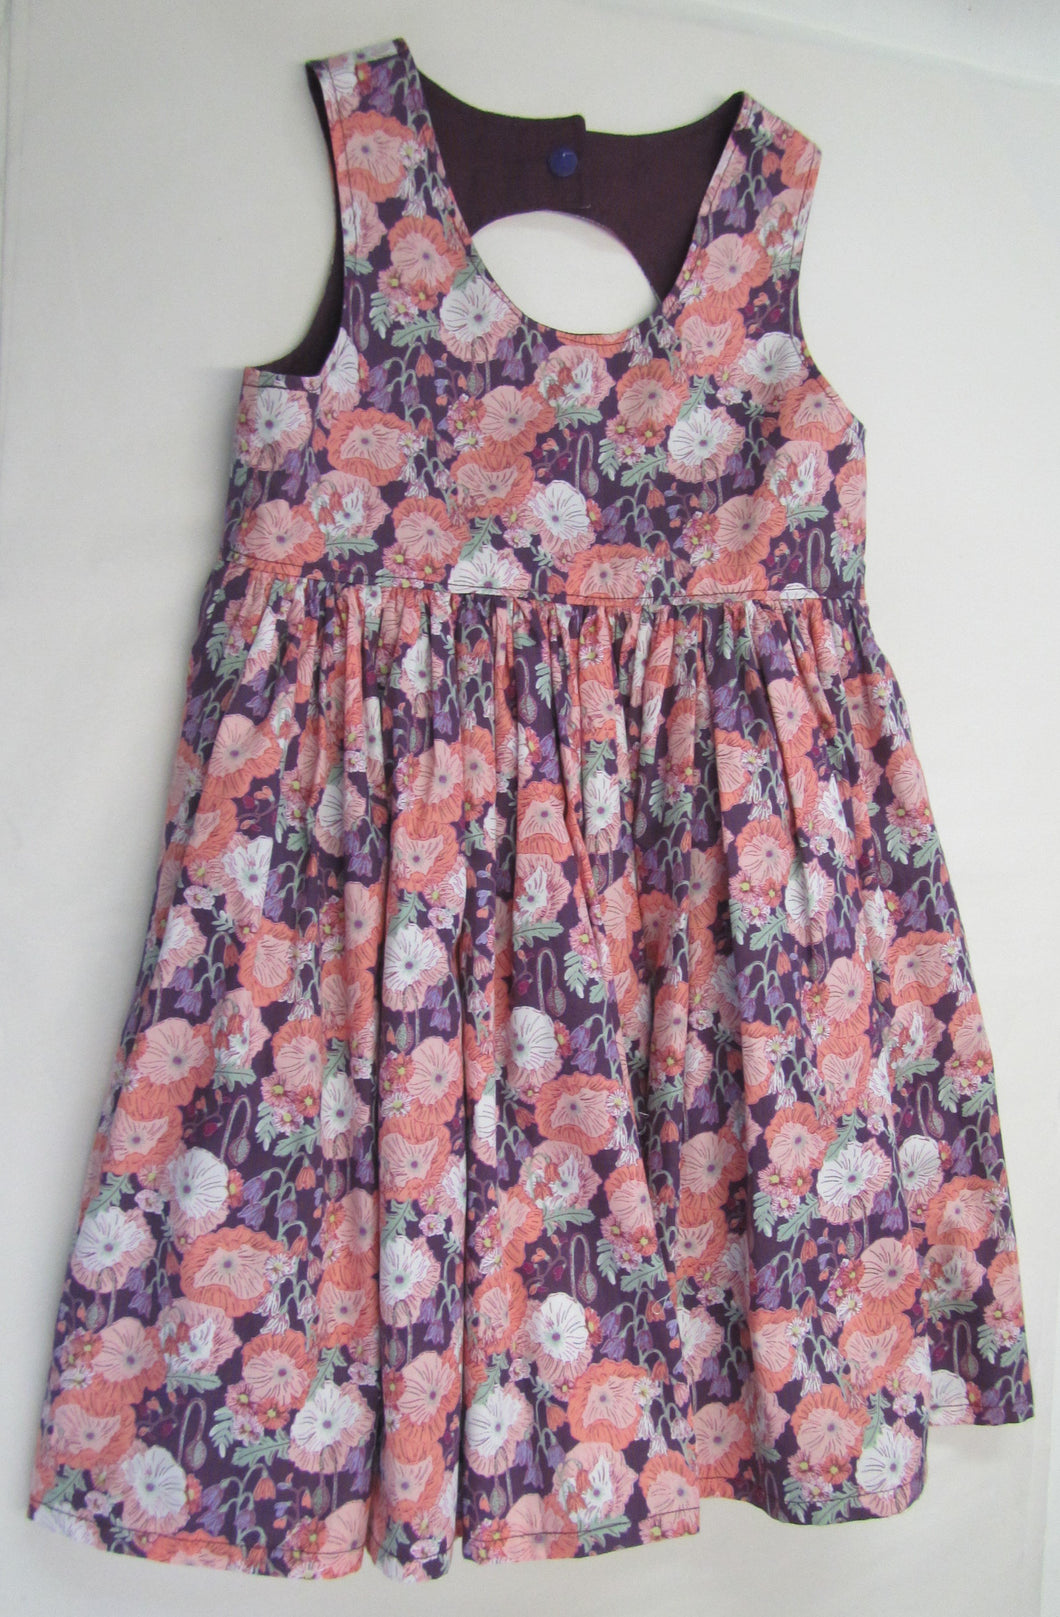 Hand crafted peach and purple floral dress fully lined 5 years